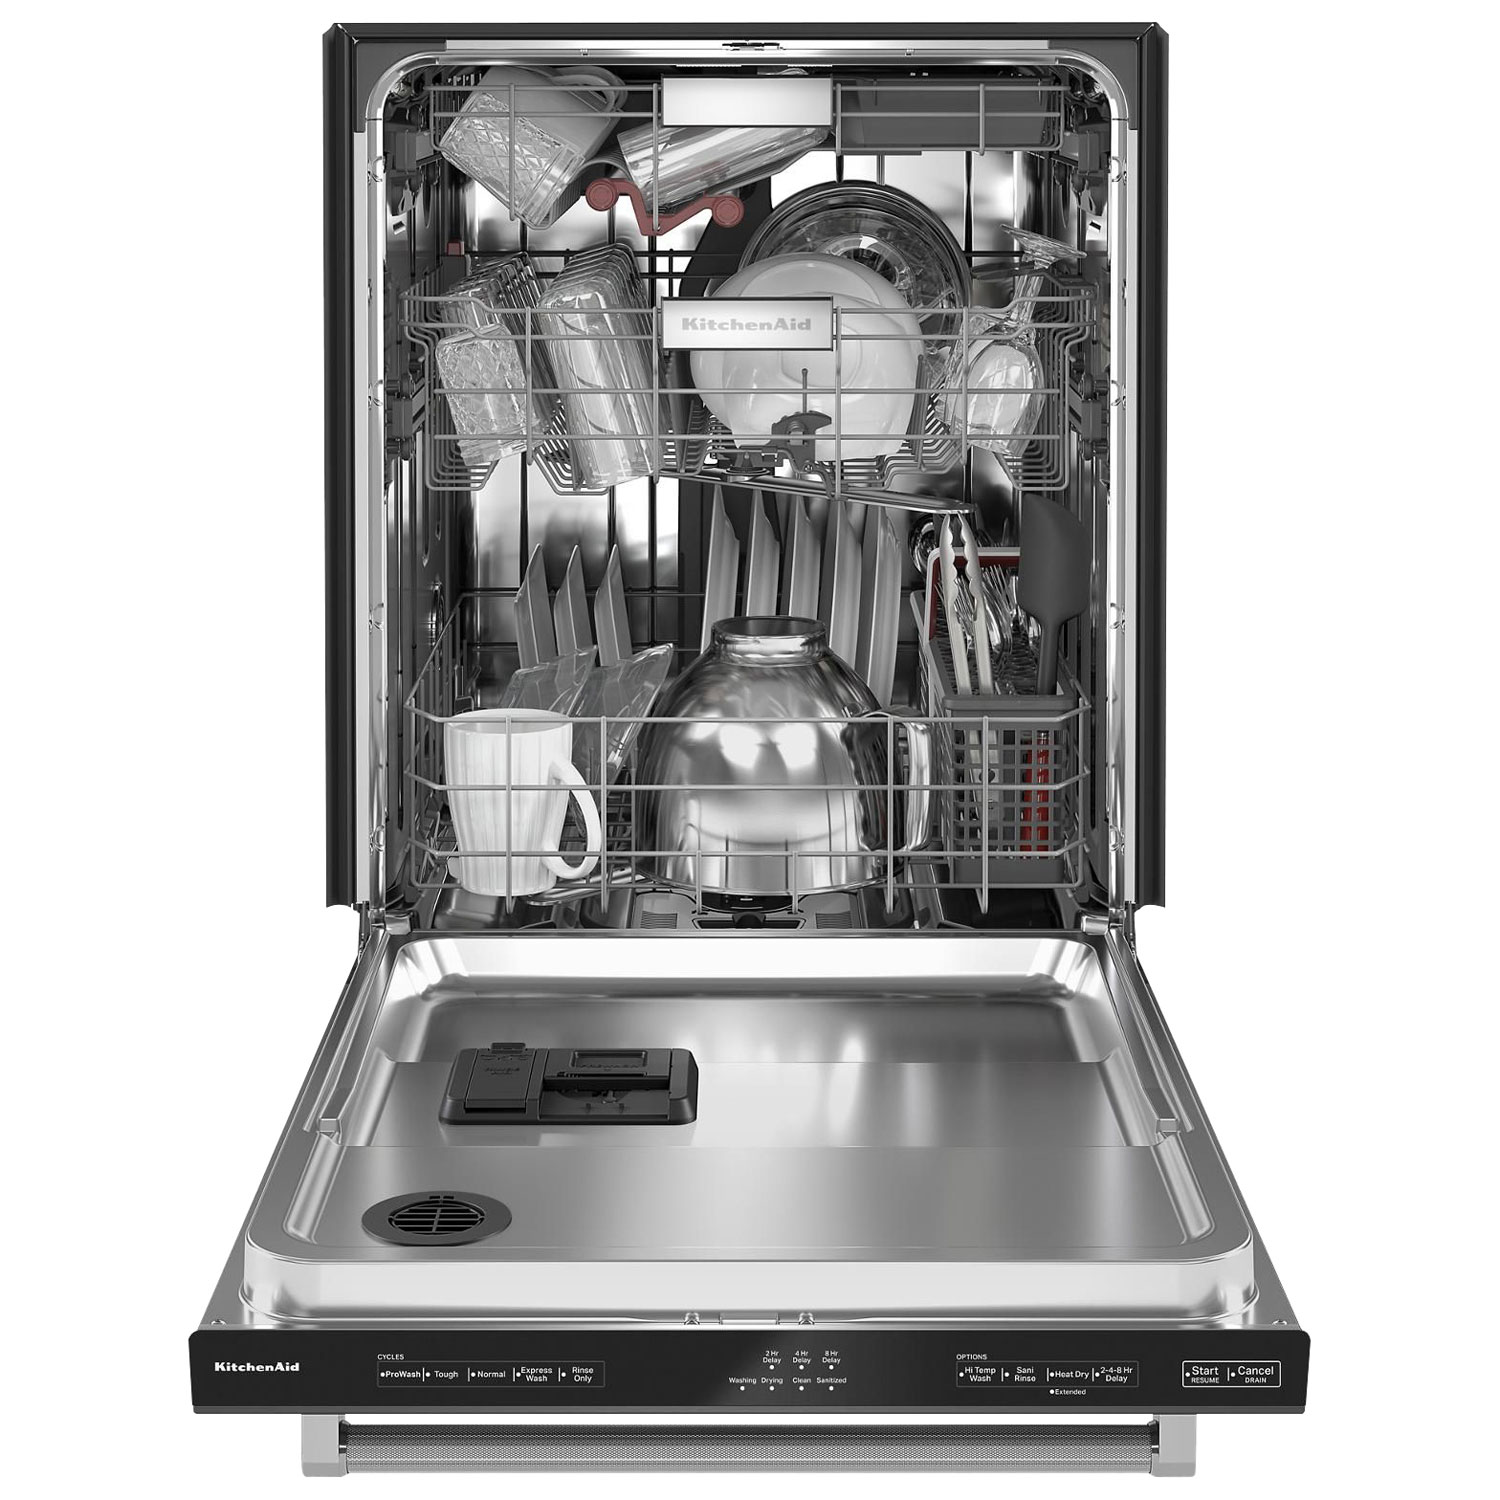 Kitchenaid 24 44db Built In Dishwasher With Stainless Steel Tub Kdtm404kbs Black Stainless Best Buy Canada